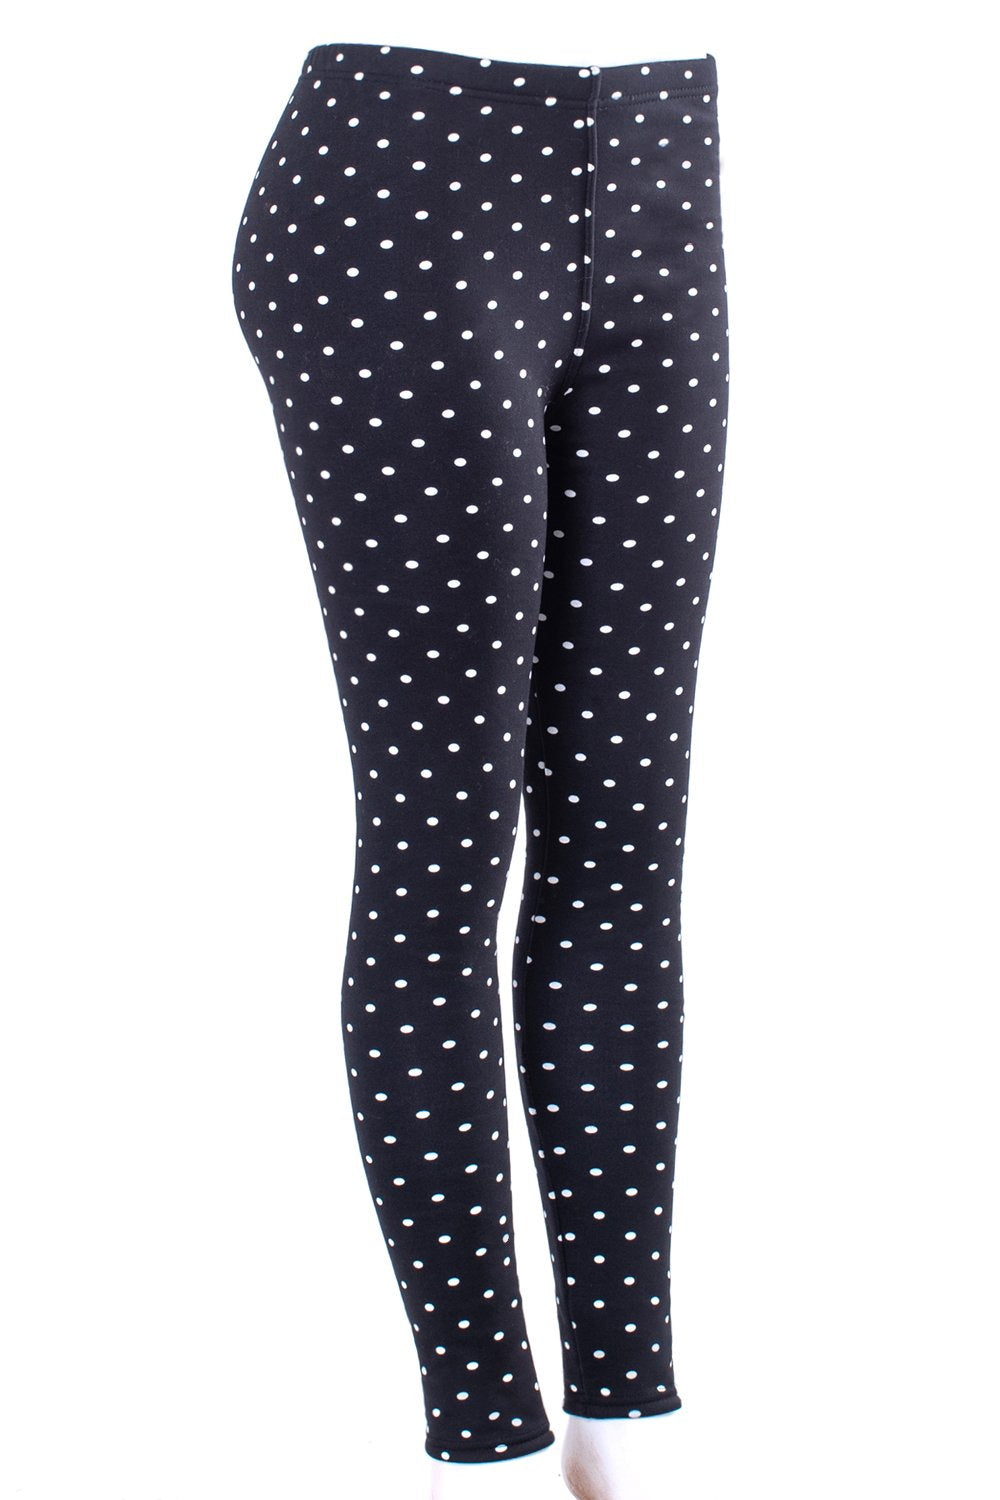 Mini Polka Dots - Fur Lined Leggings